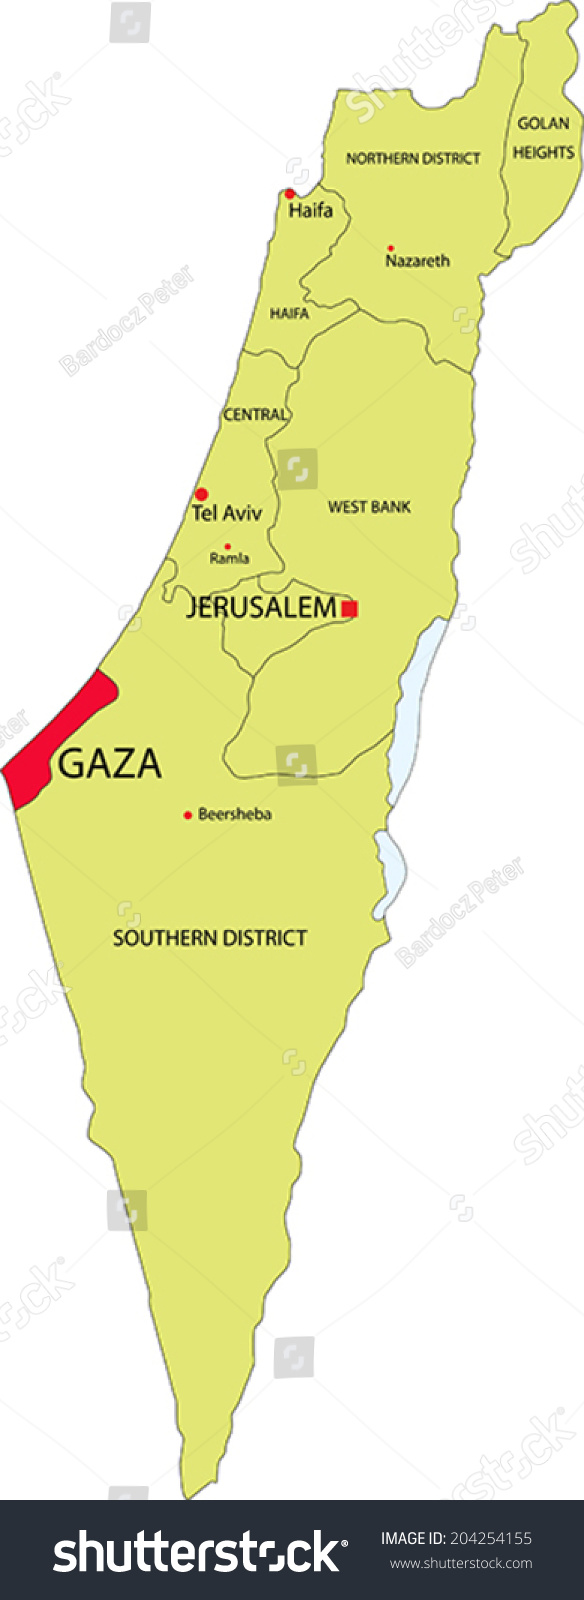 israel vector map with the gaza strip highlighted. israel vector map gaza strip highlighted stock vector